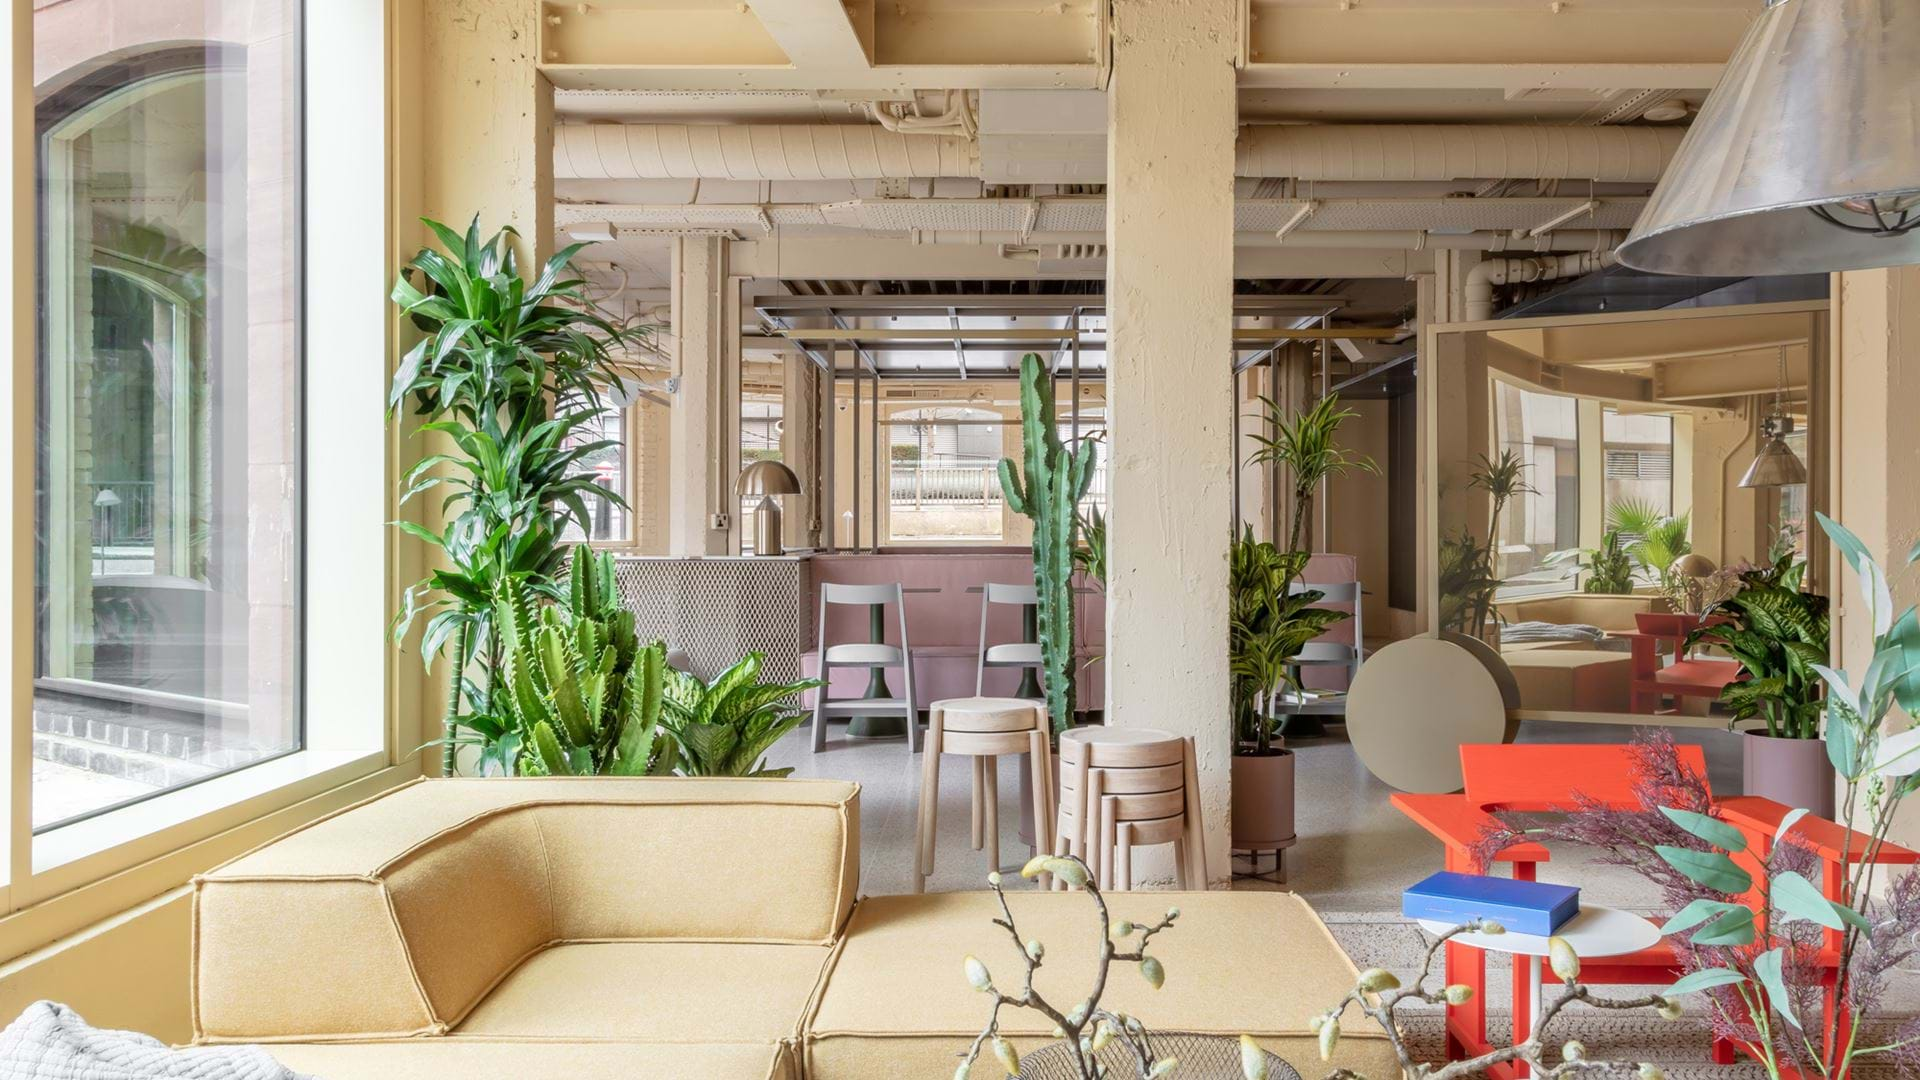 London | Design-led Aparthotel, Locke